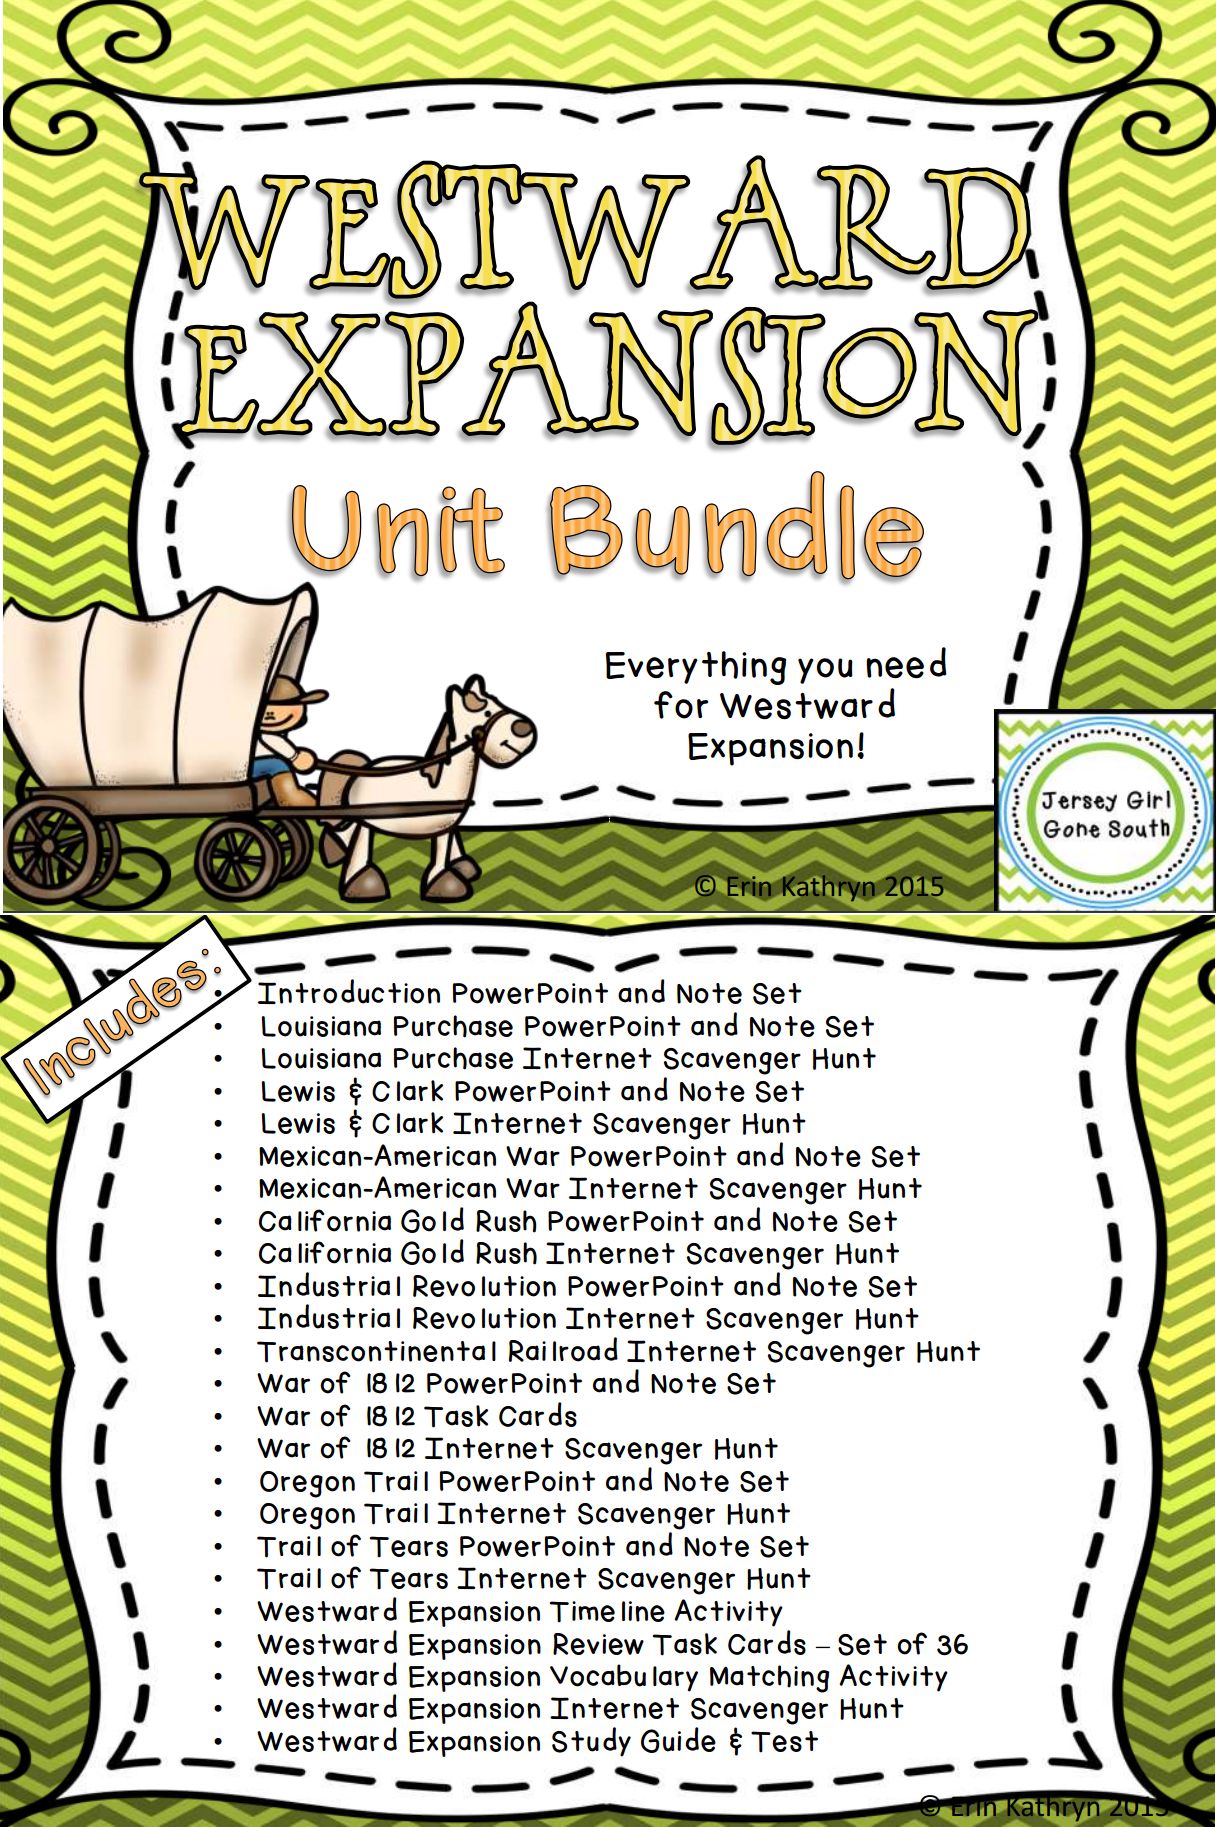 worksheet Westward Expansion Worksheets westward expansion unit bundle social studies this includes everything you need to teach be sure check out